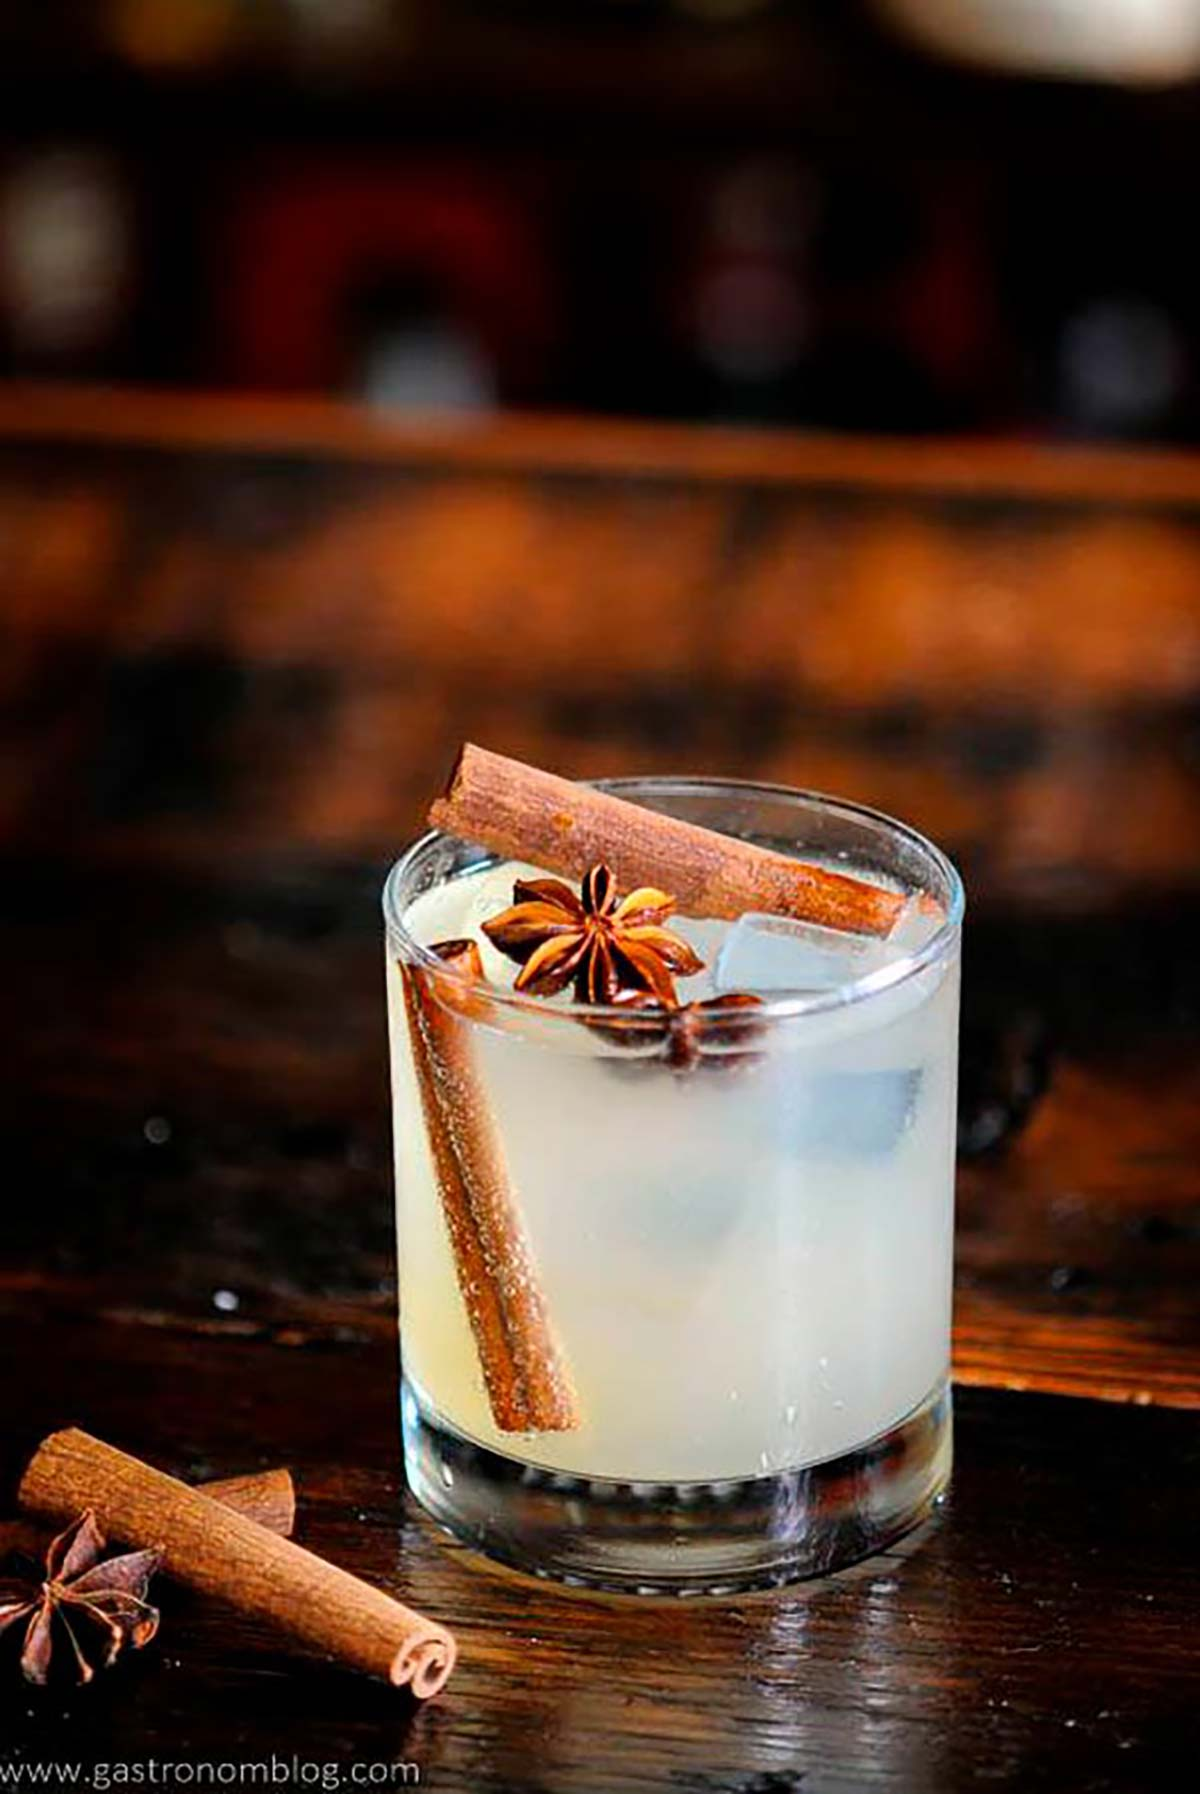 A cocktail garnished with cinnamon sticks and star anise.